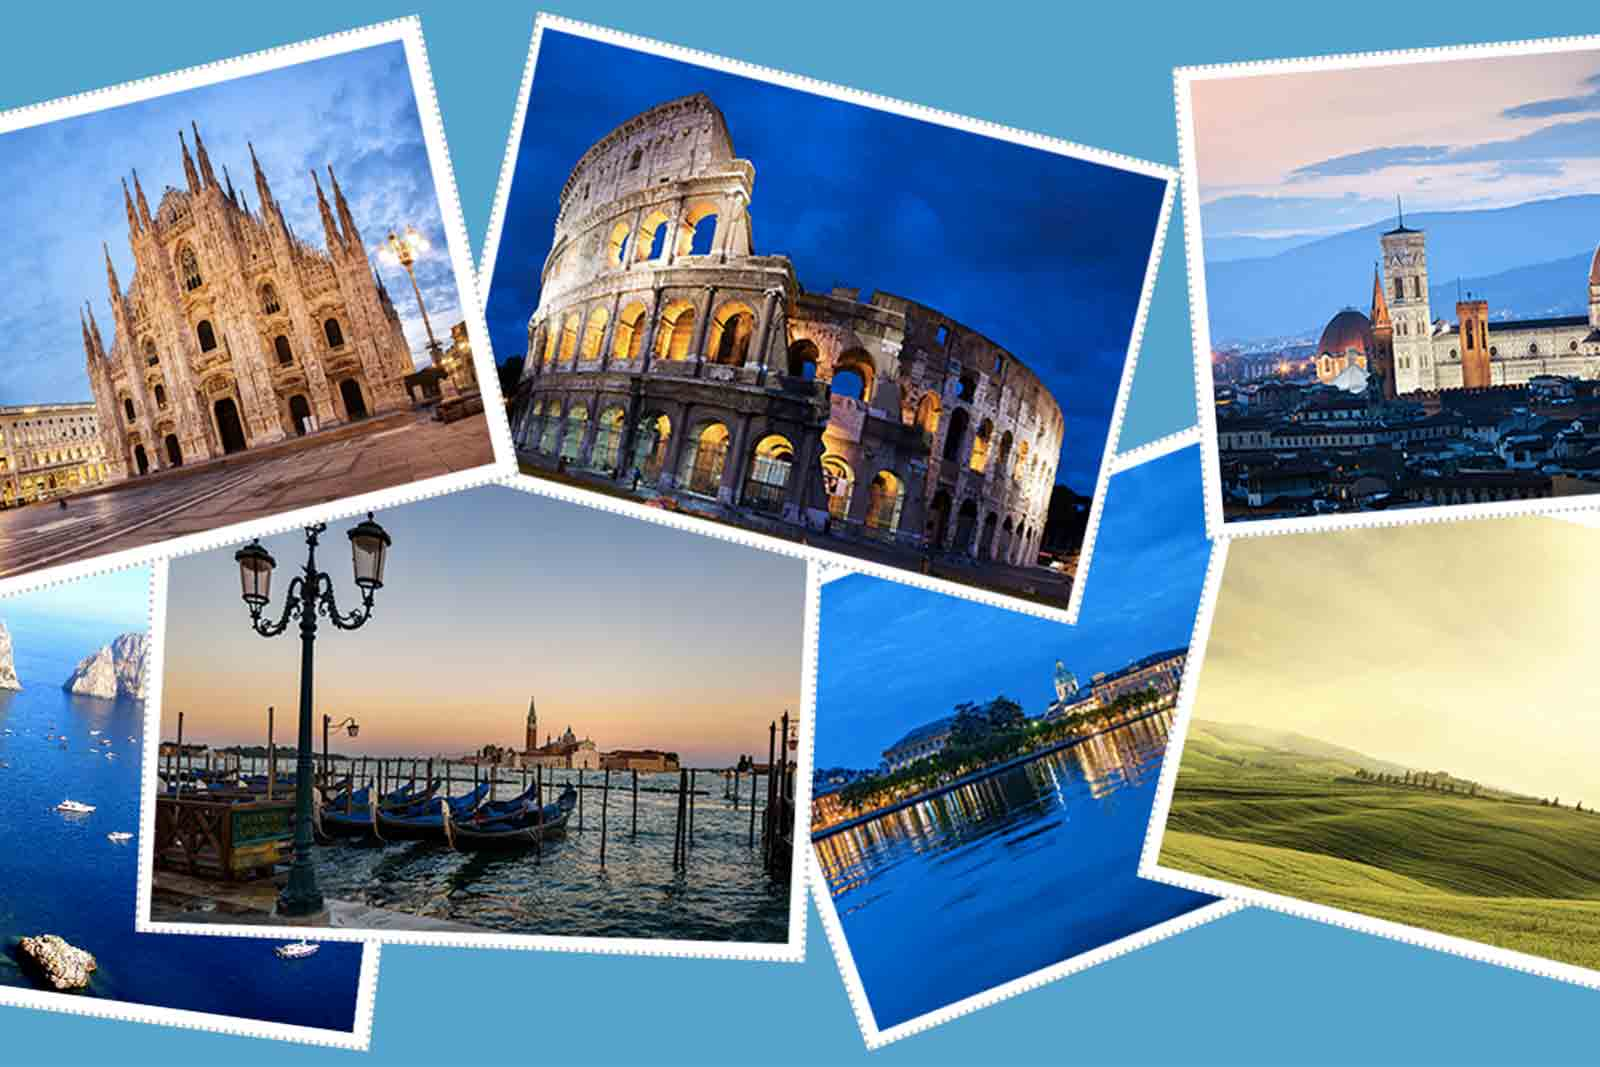 Across Italy you can nott miss 20-day